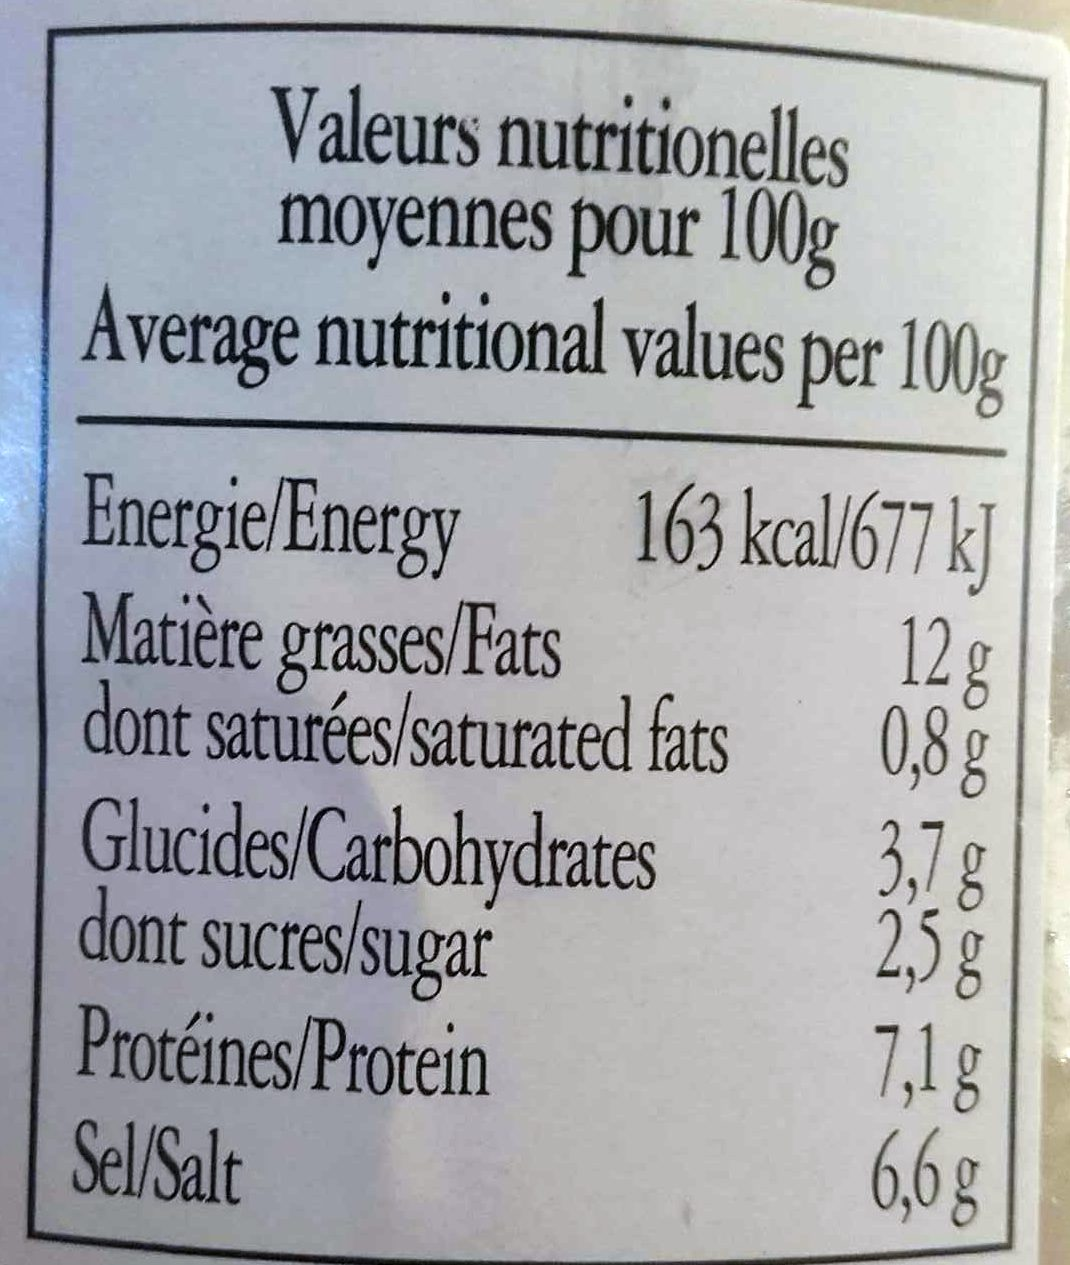 Moutarde de Bourgogne - Nutrition facts - fr